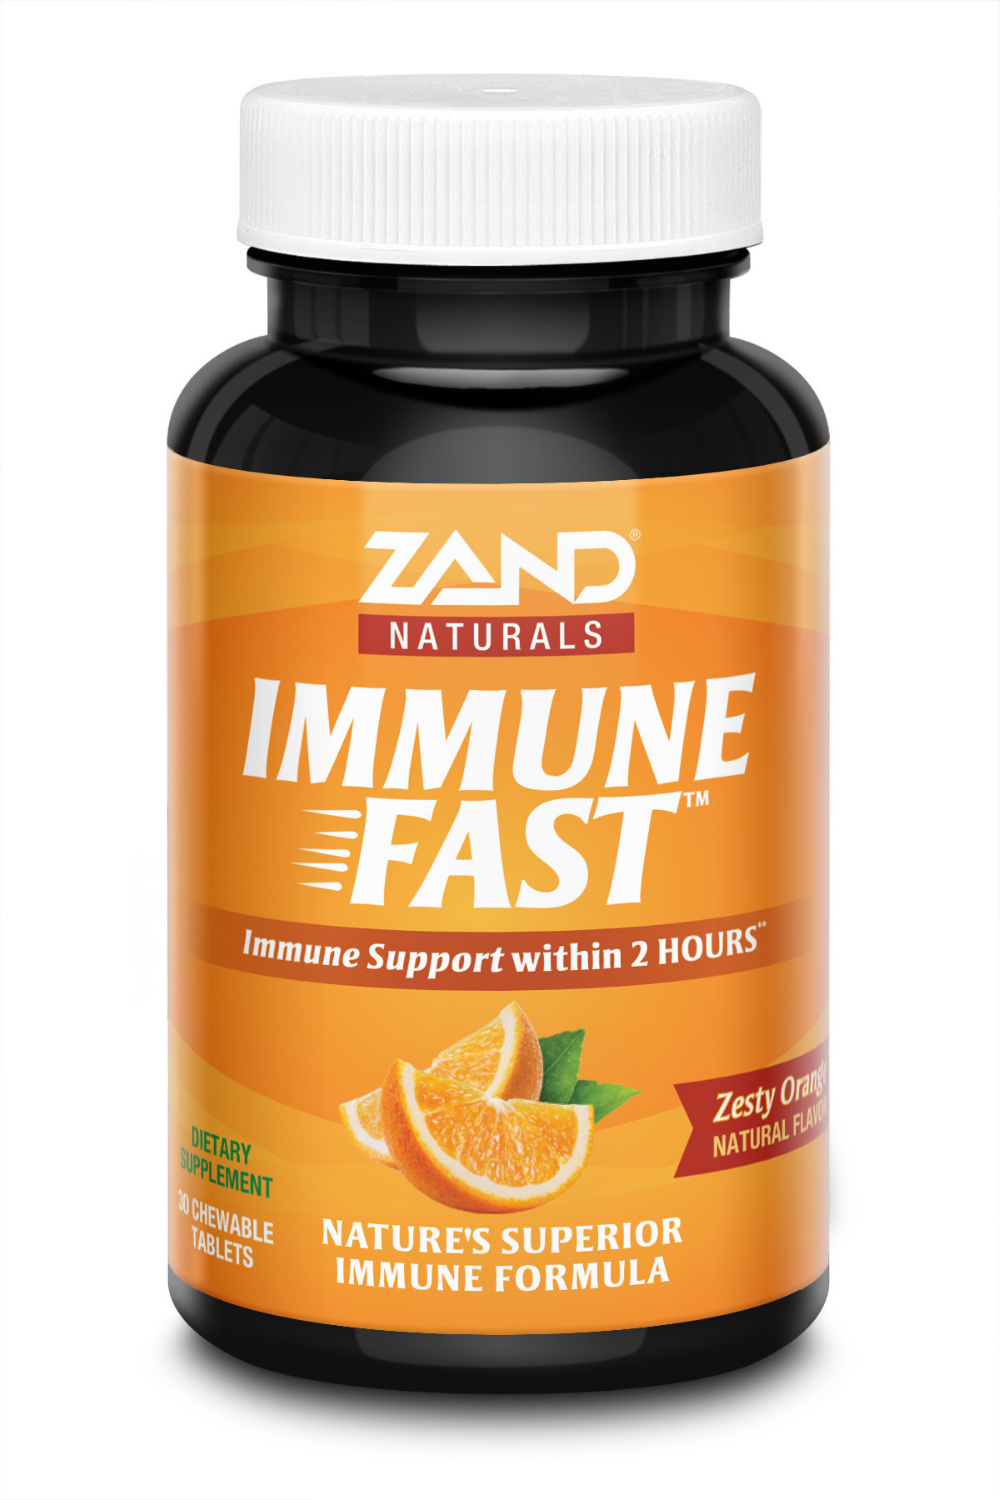 Immune Fast Zesty Orange Chewables helps boost immune response within two hours of taking it.